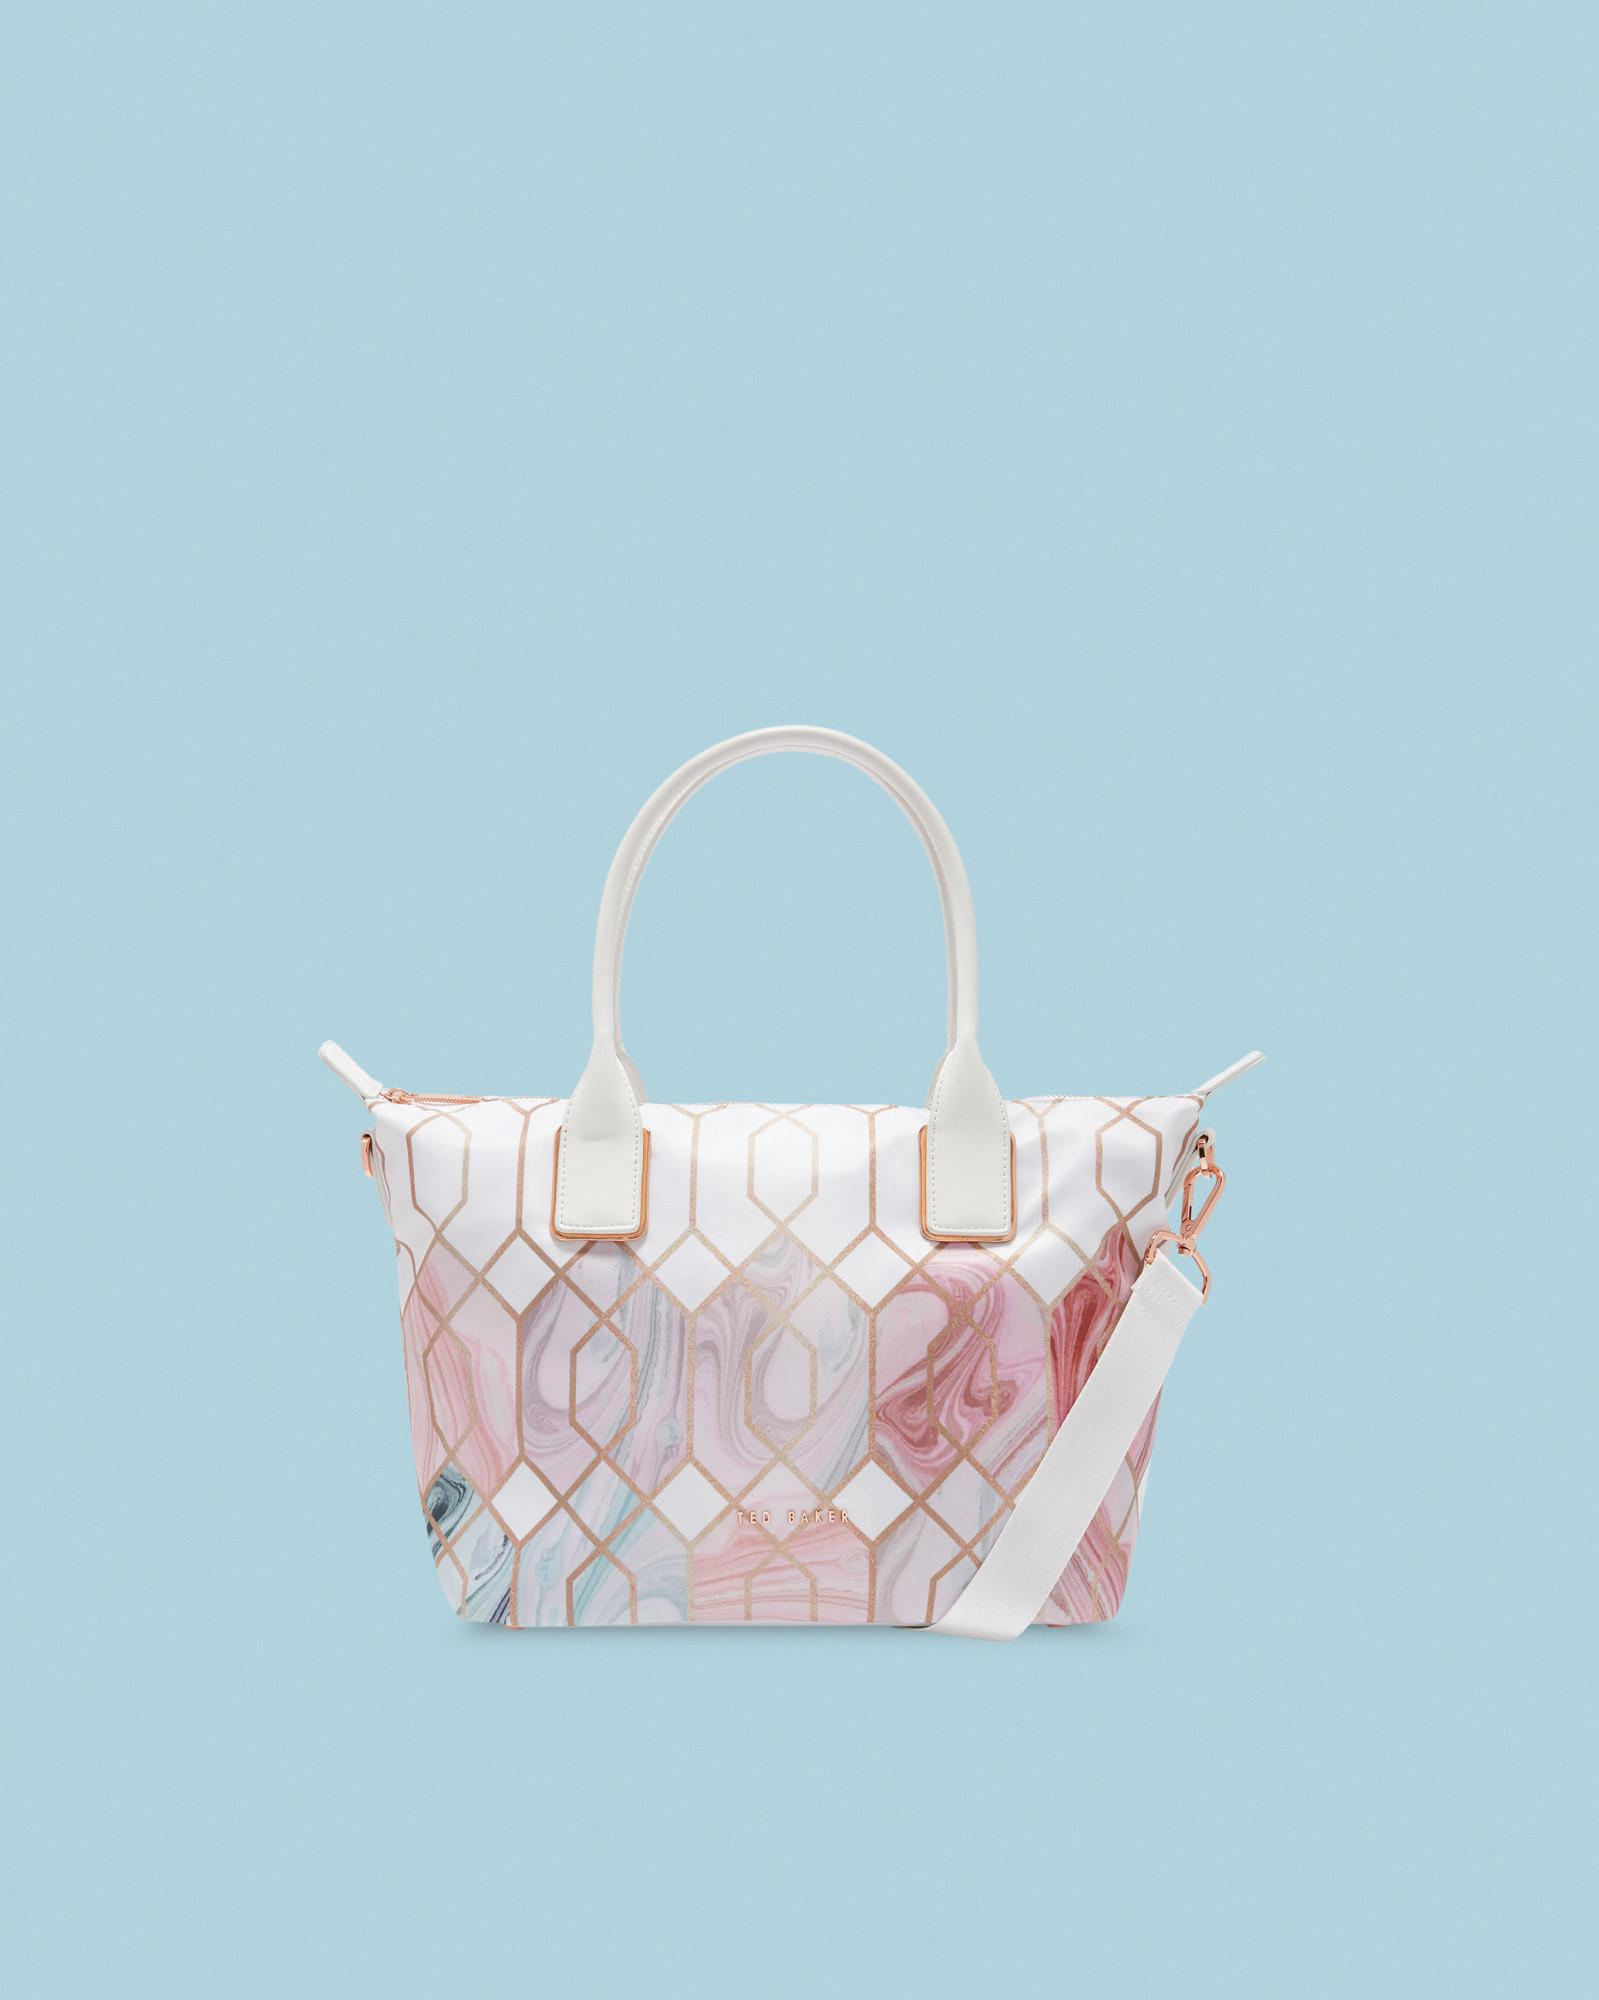 7618351f91 Ted Baker Sea Of Clouds Small Tote Bag in White - Lyst